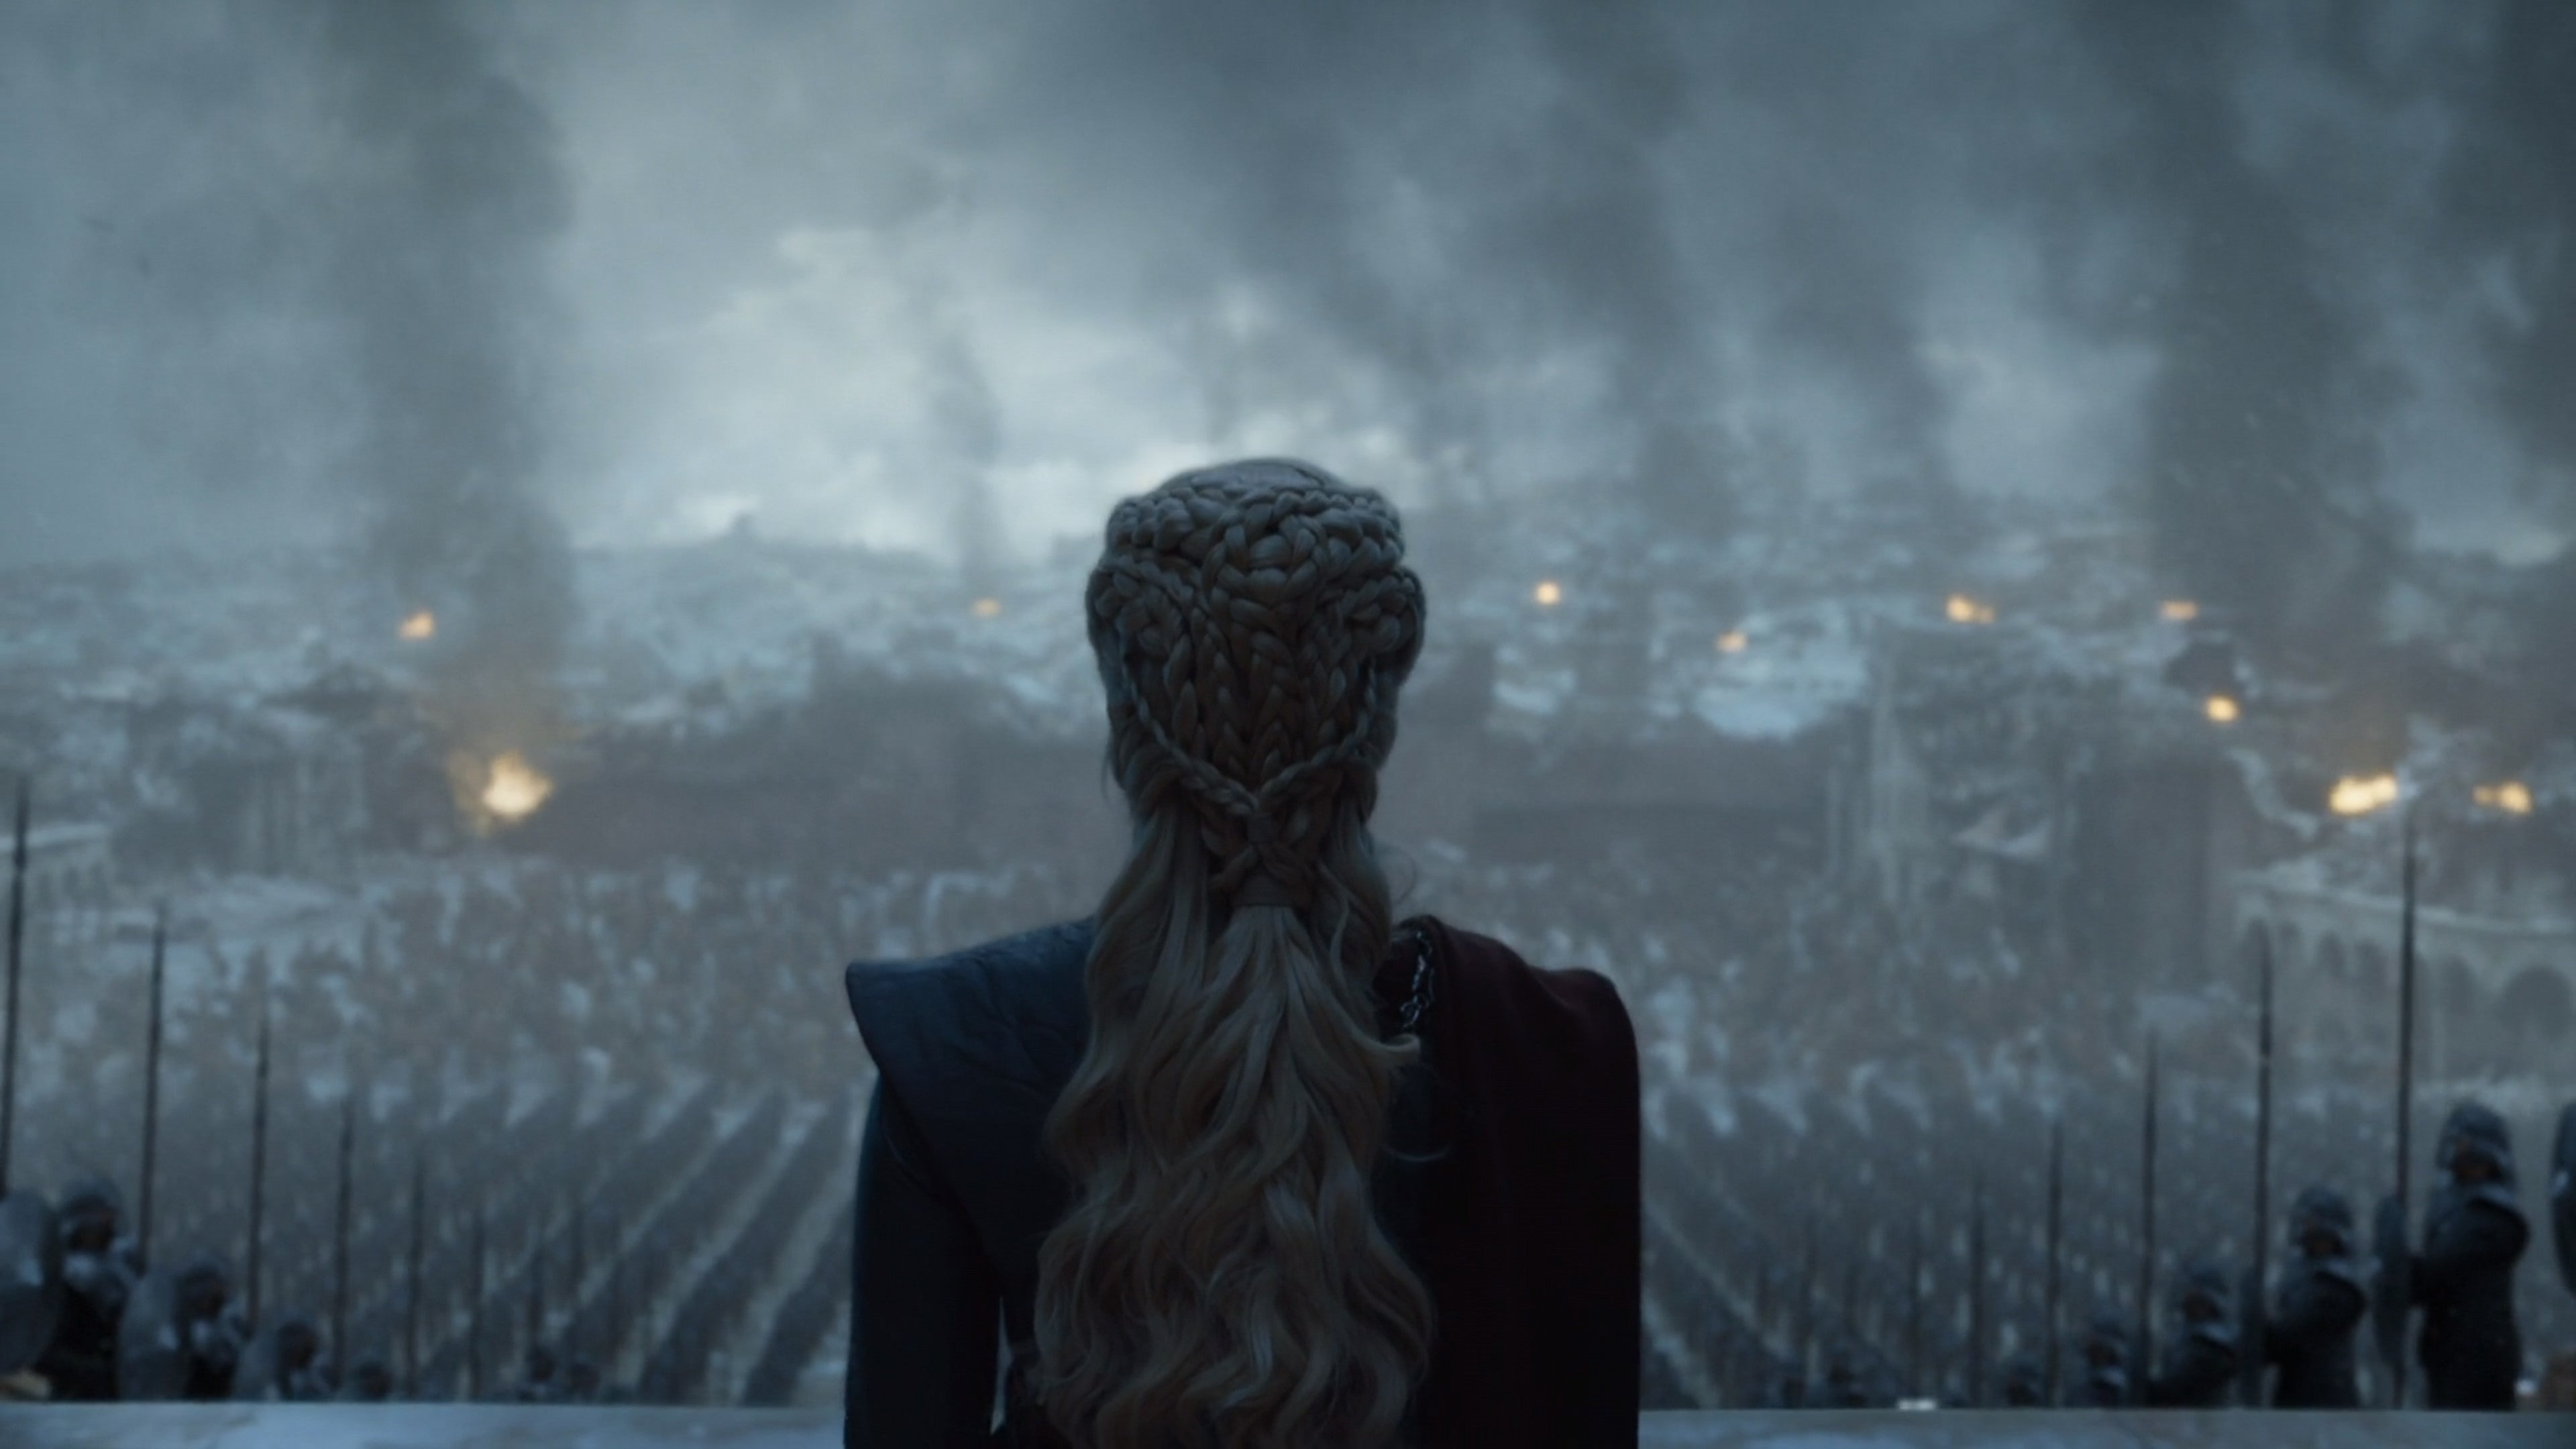 game of thrones season 8 episode 6 trailer daenerys Targaryen queen of the ashes